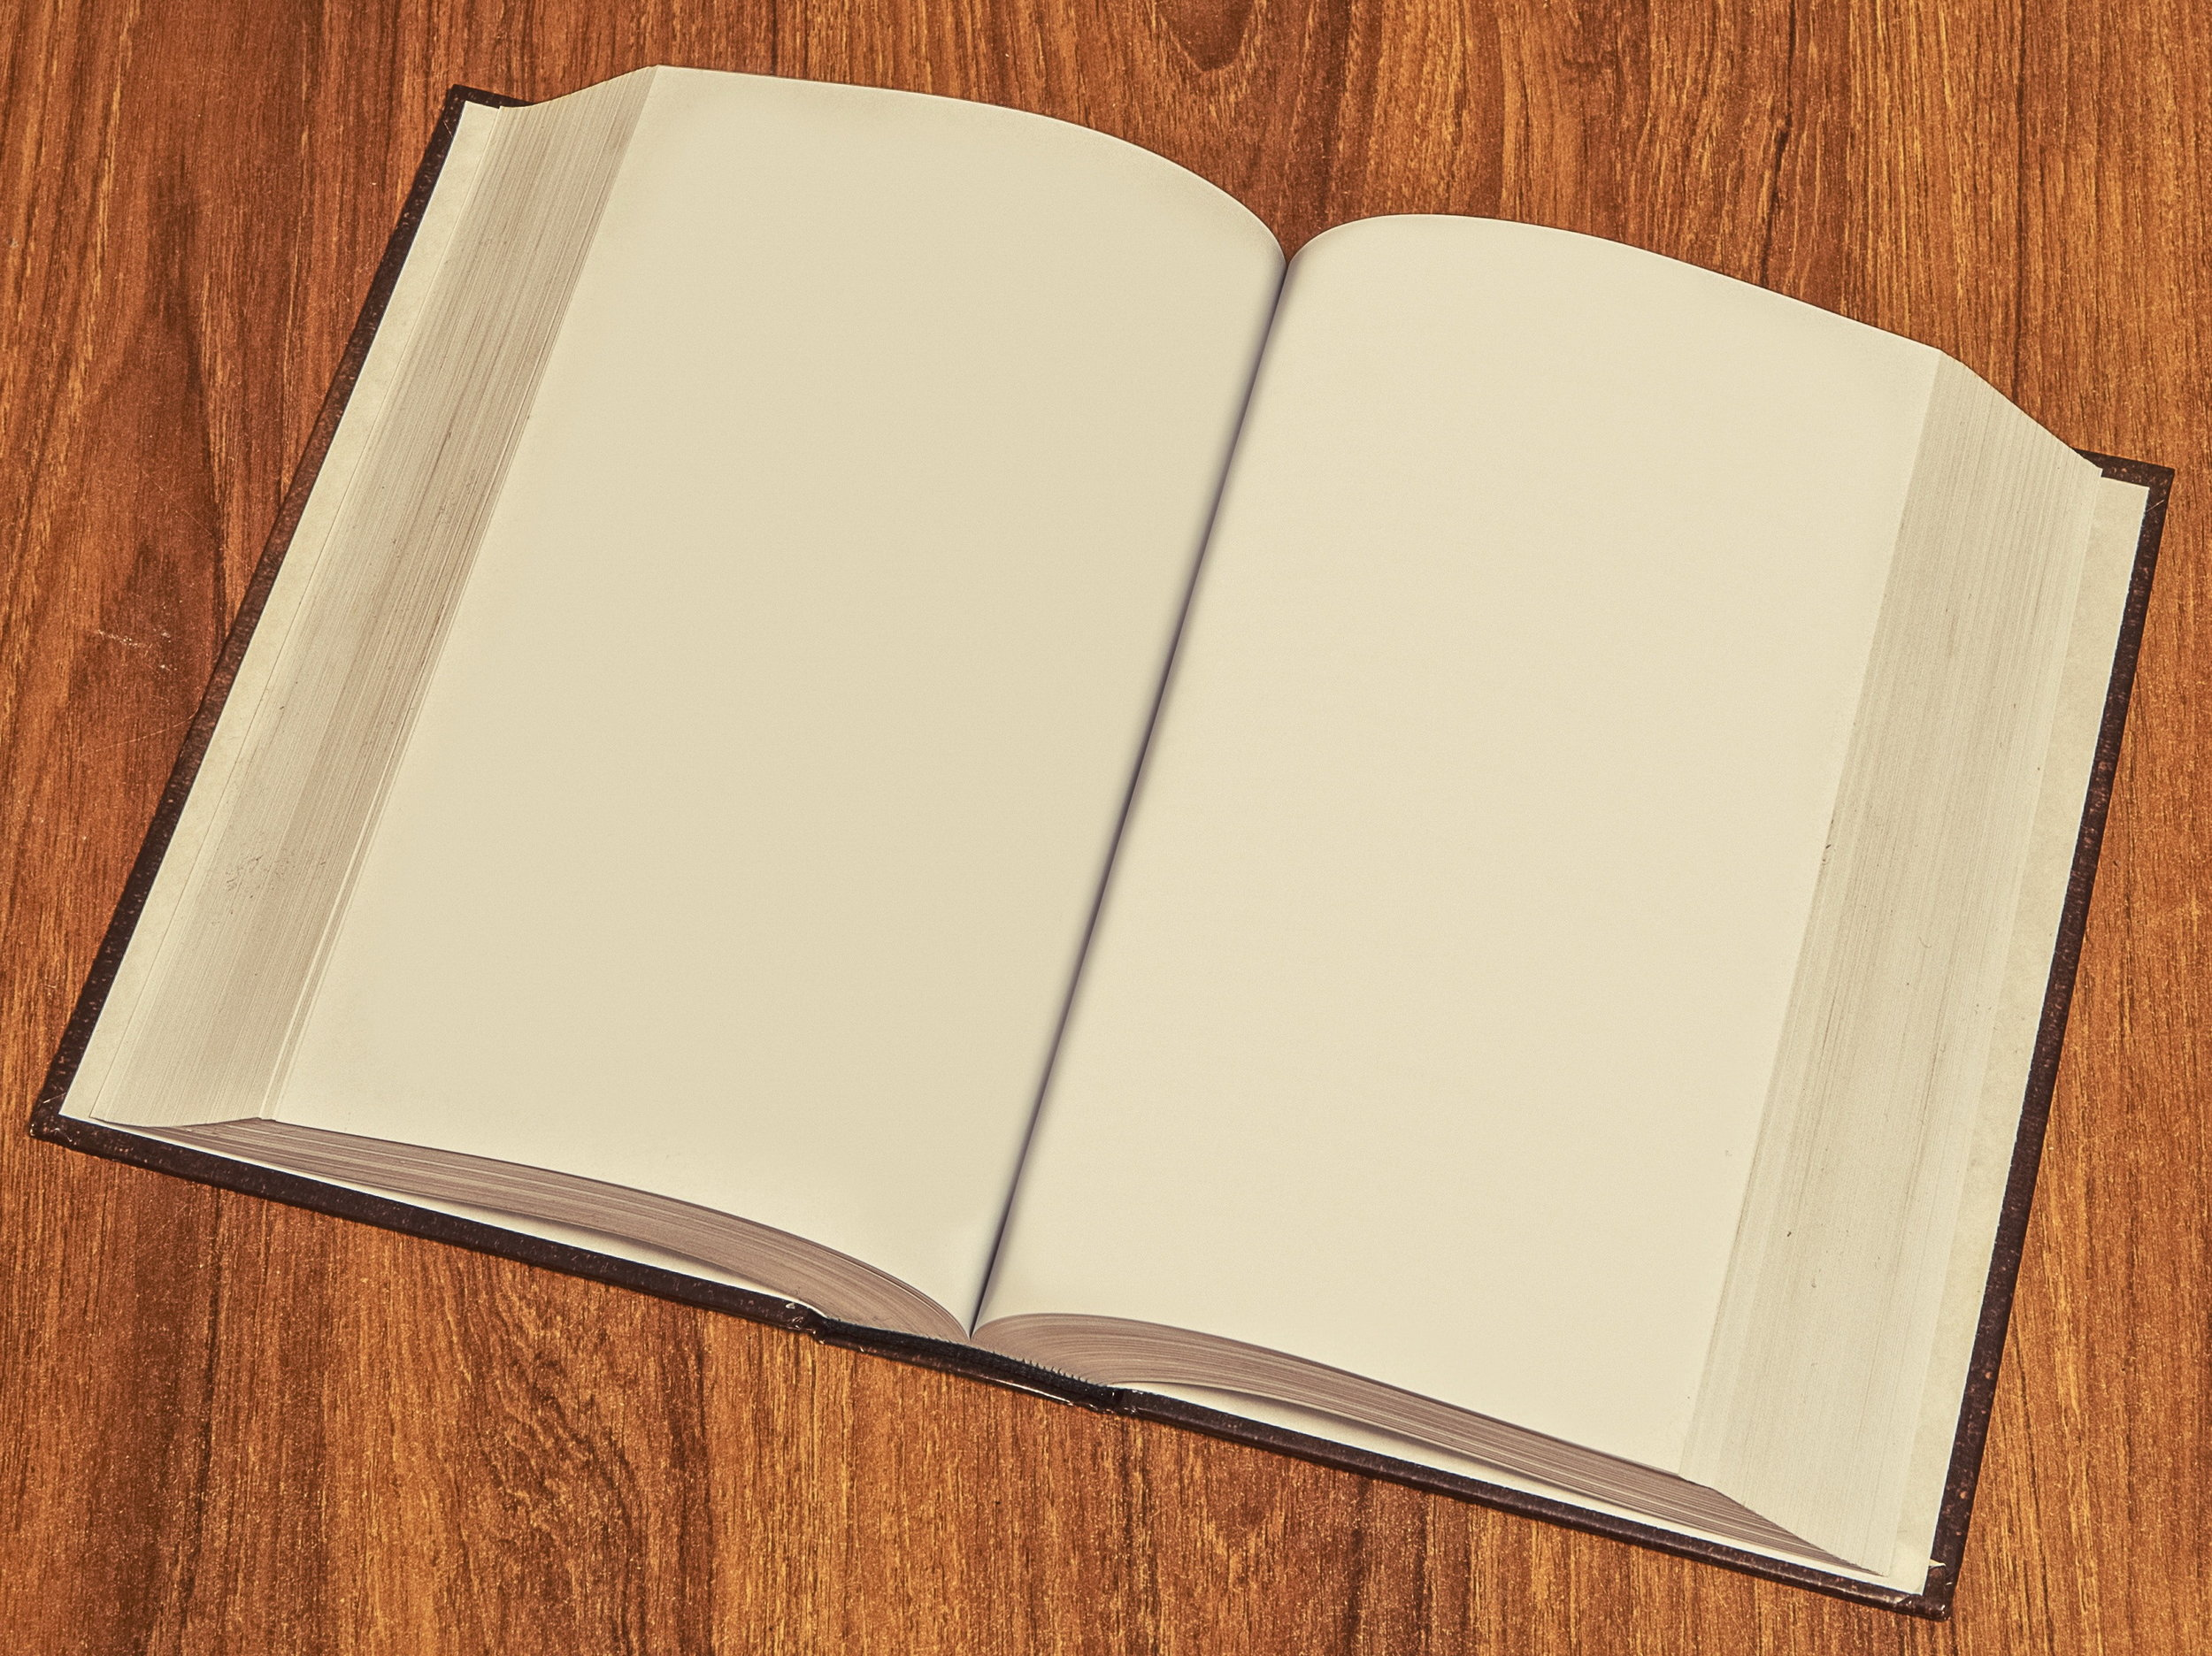 This blank book is a visual representation of you being spared a detailed linguistic analysis.